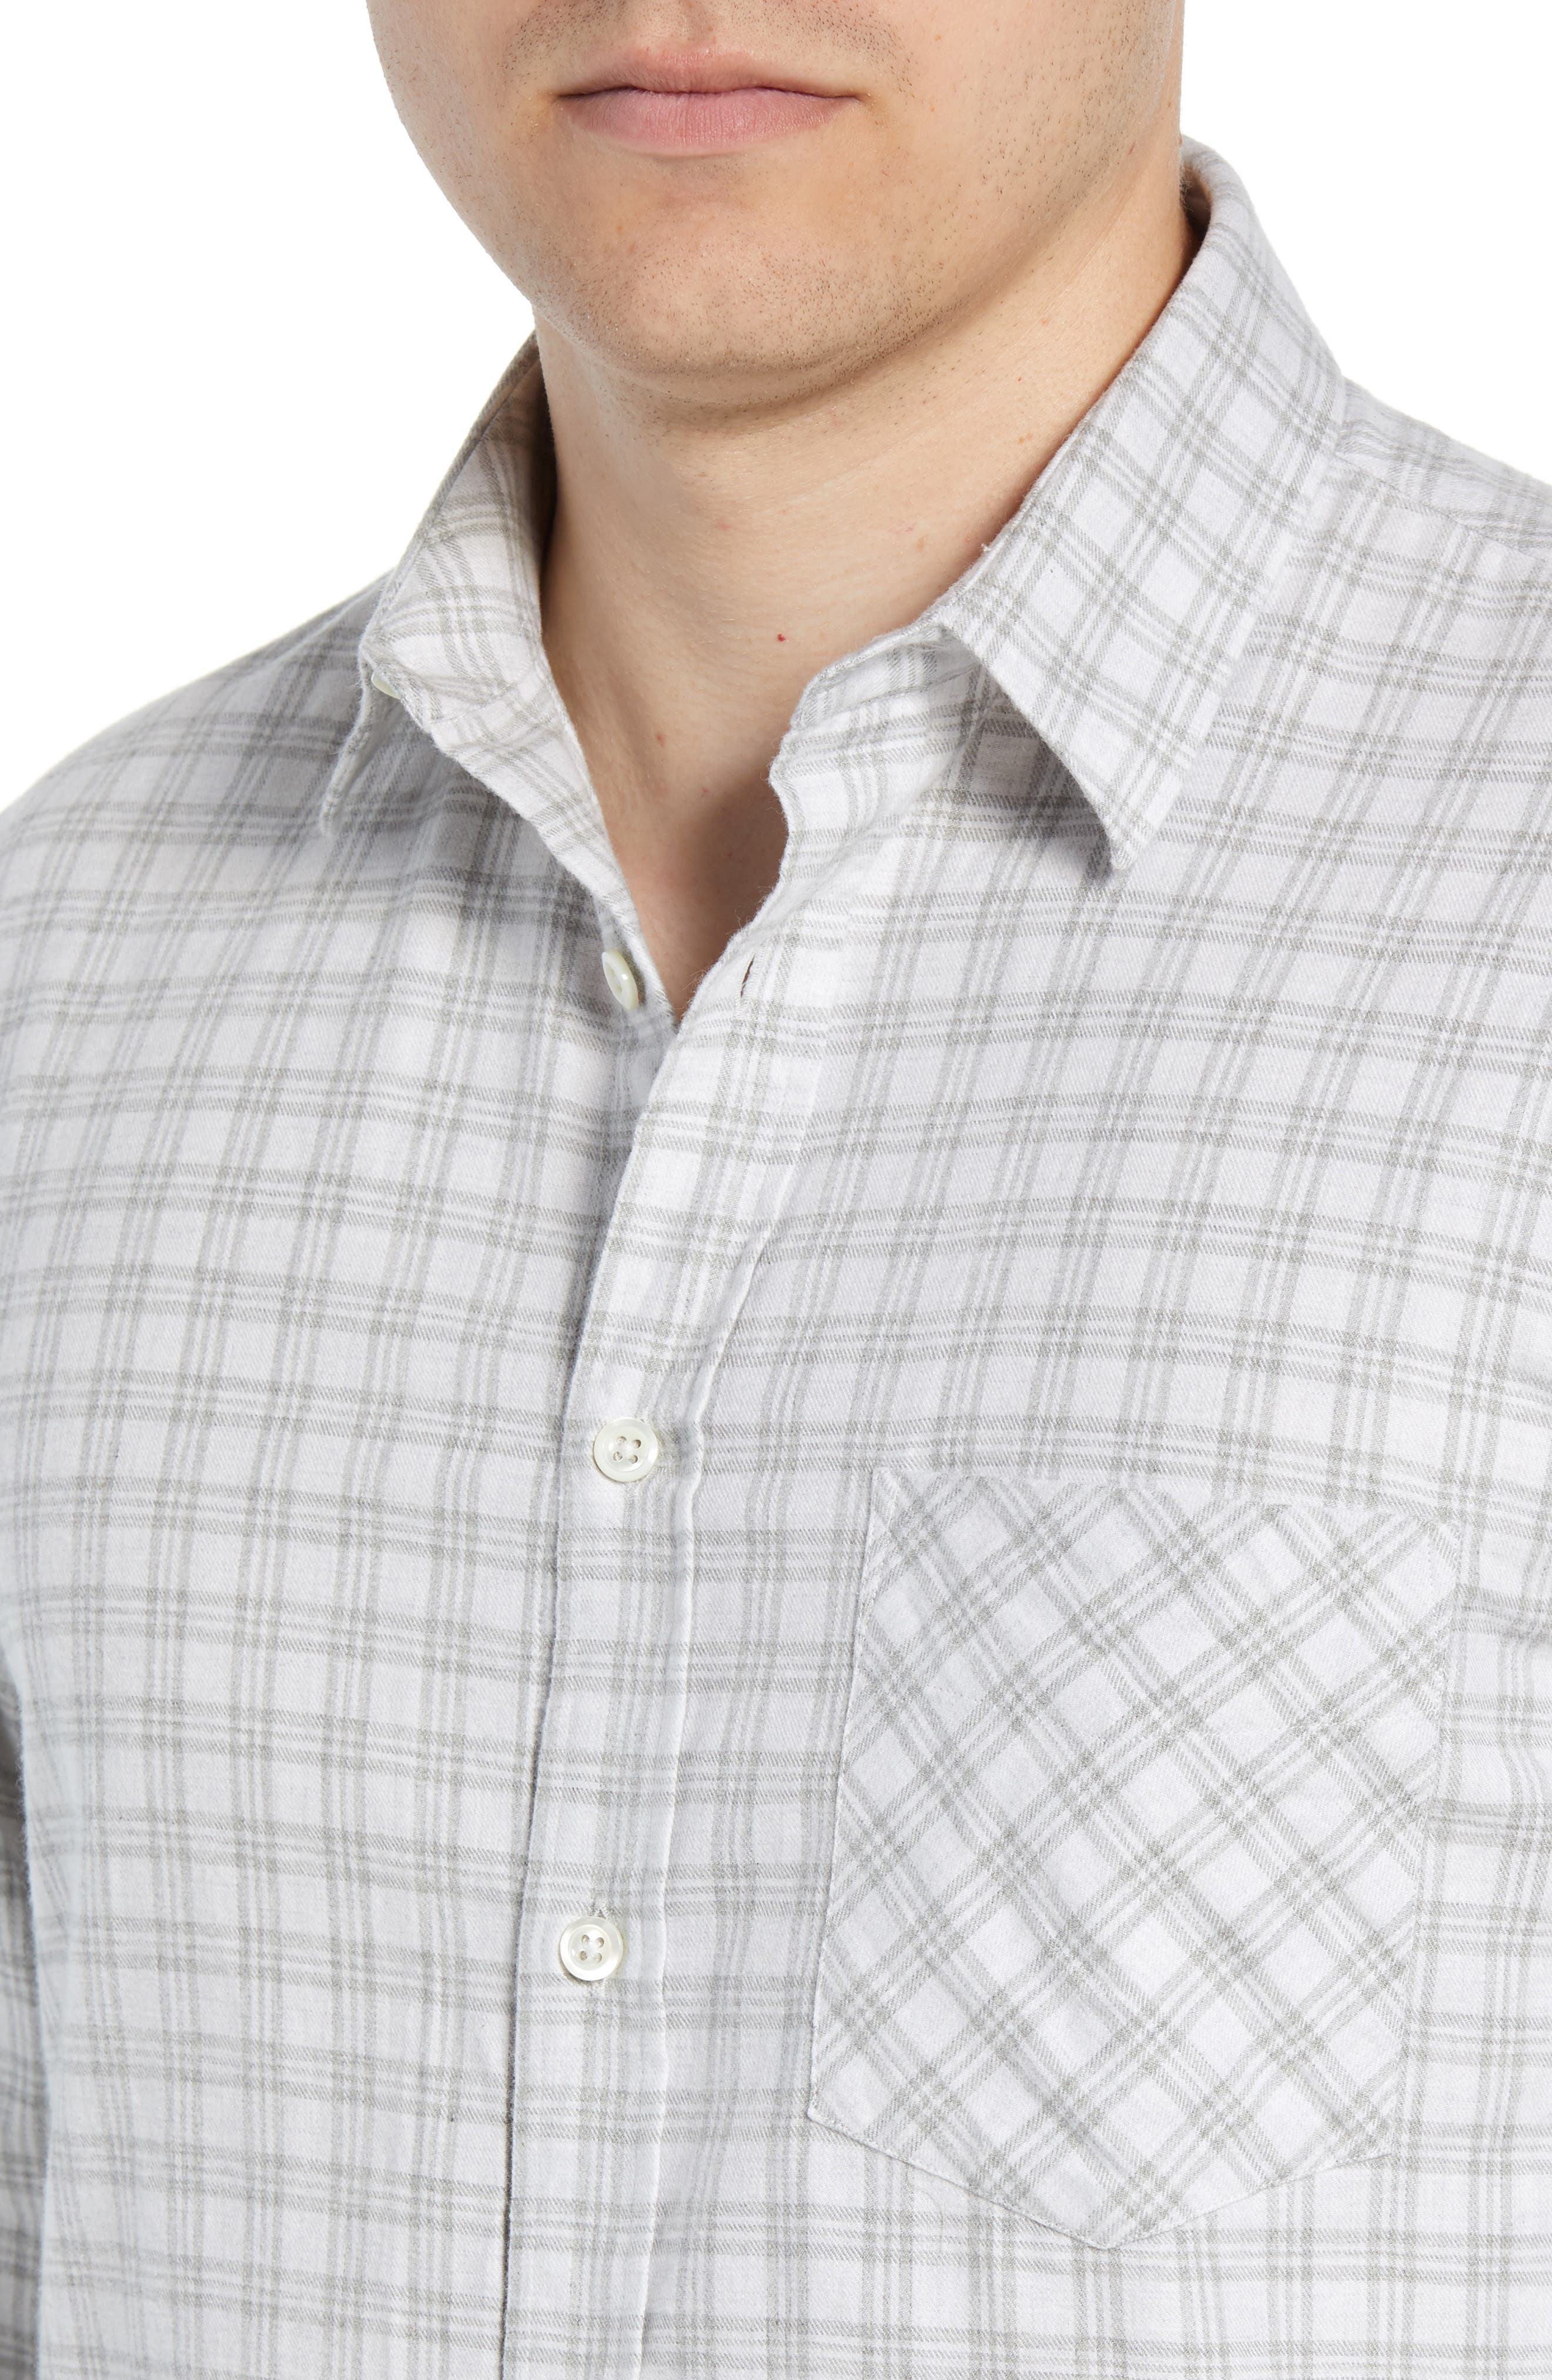 Kirby Slim Fit Check Sport Shirt,                             Alternate thumbnail 2, color,                             LIGHT GREY/ NATURAL